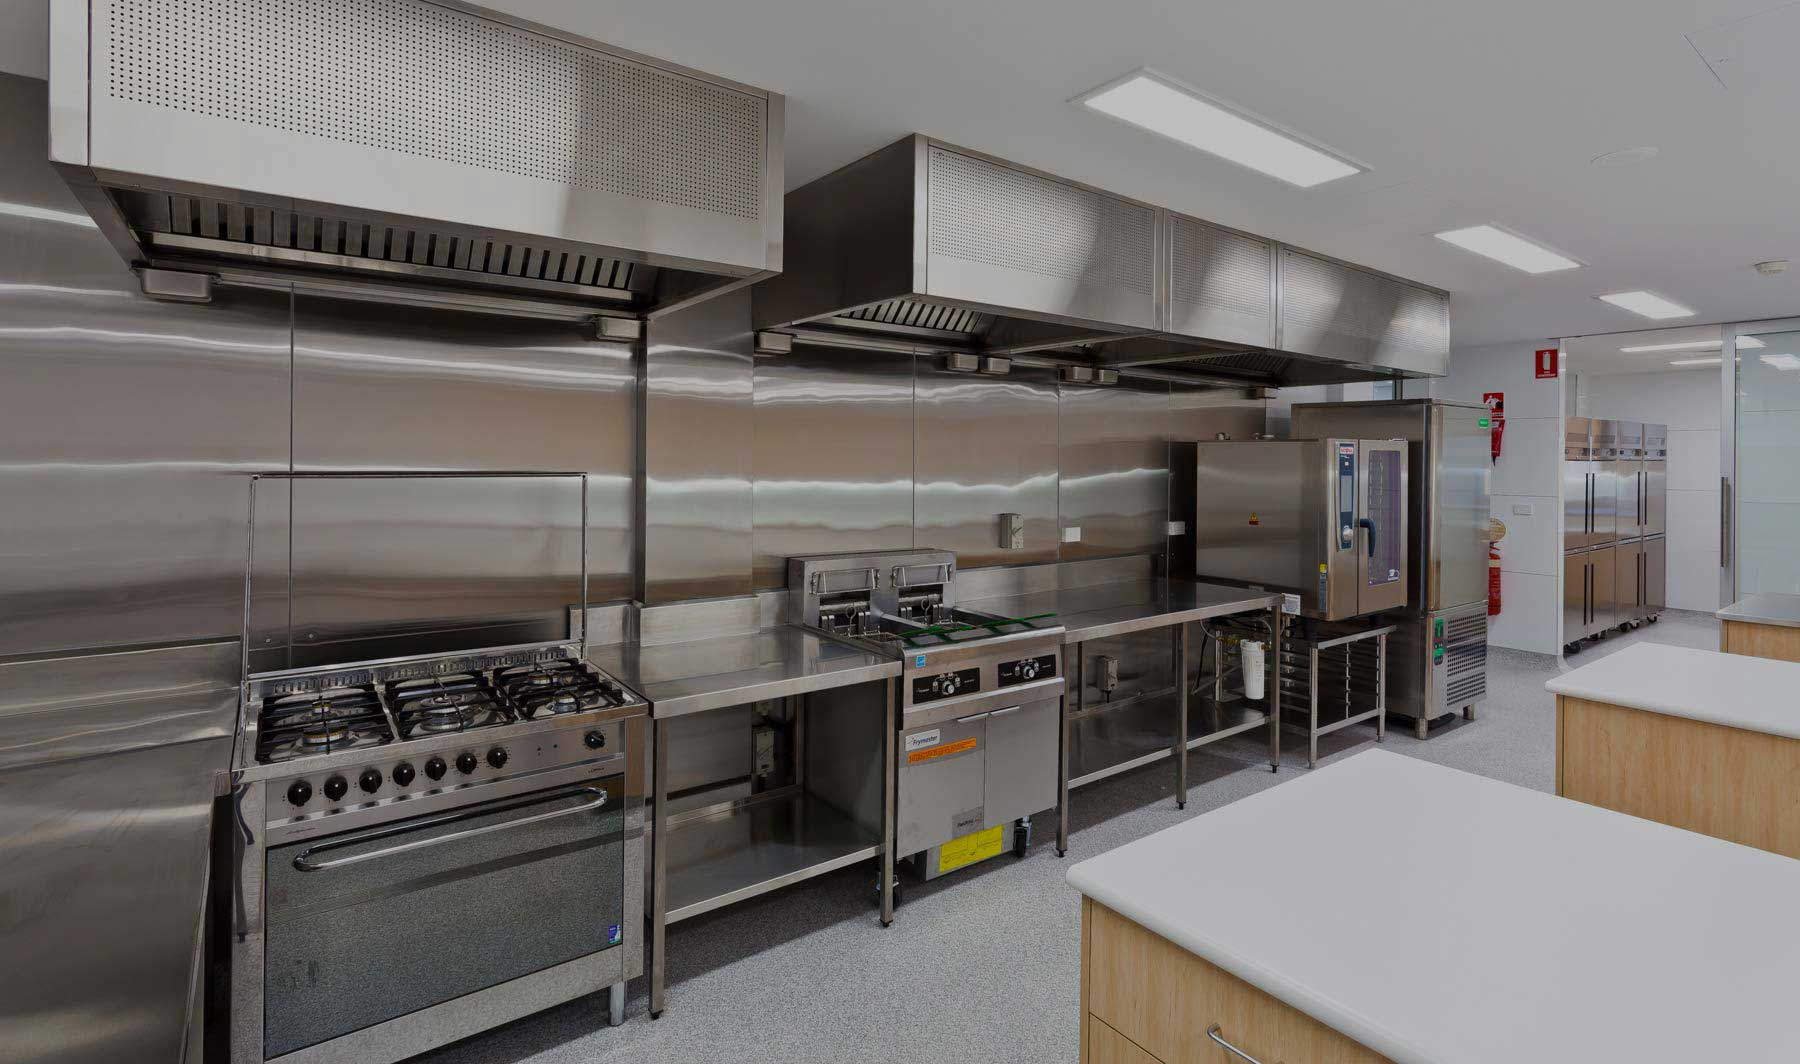 Dublin Kitchen Cleaning | Commercial kitchen cleaning company